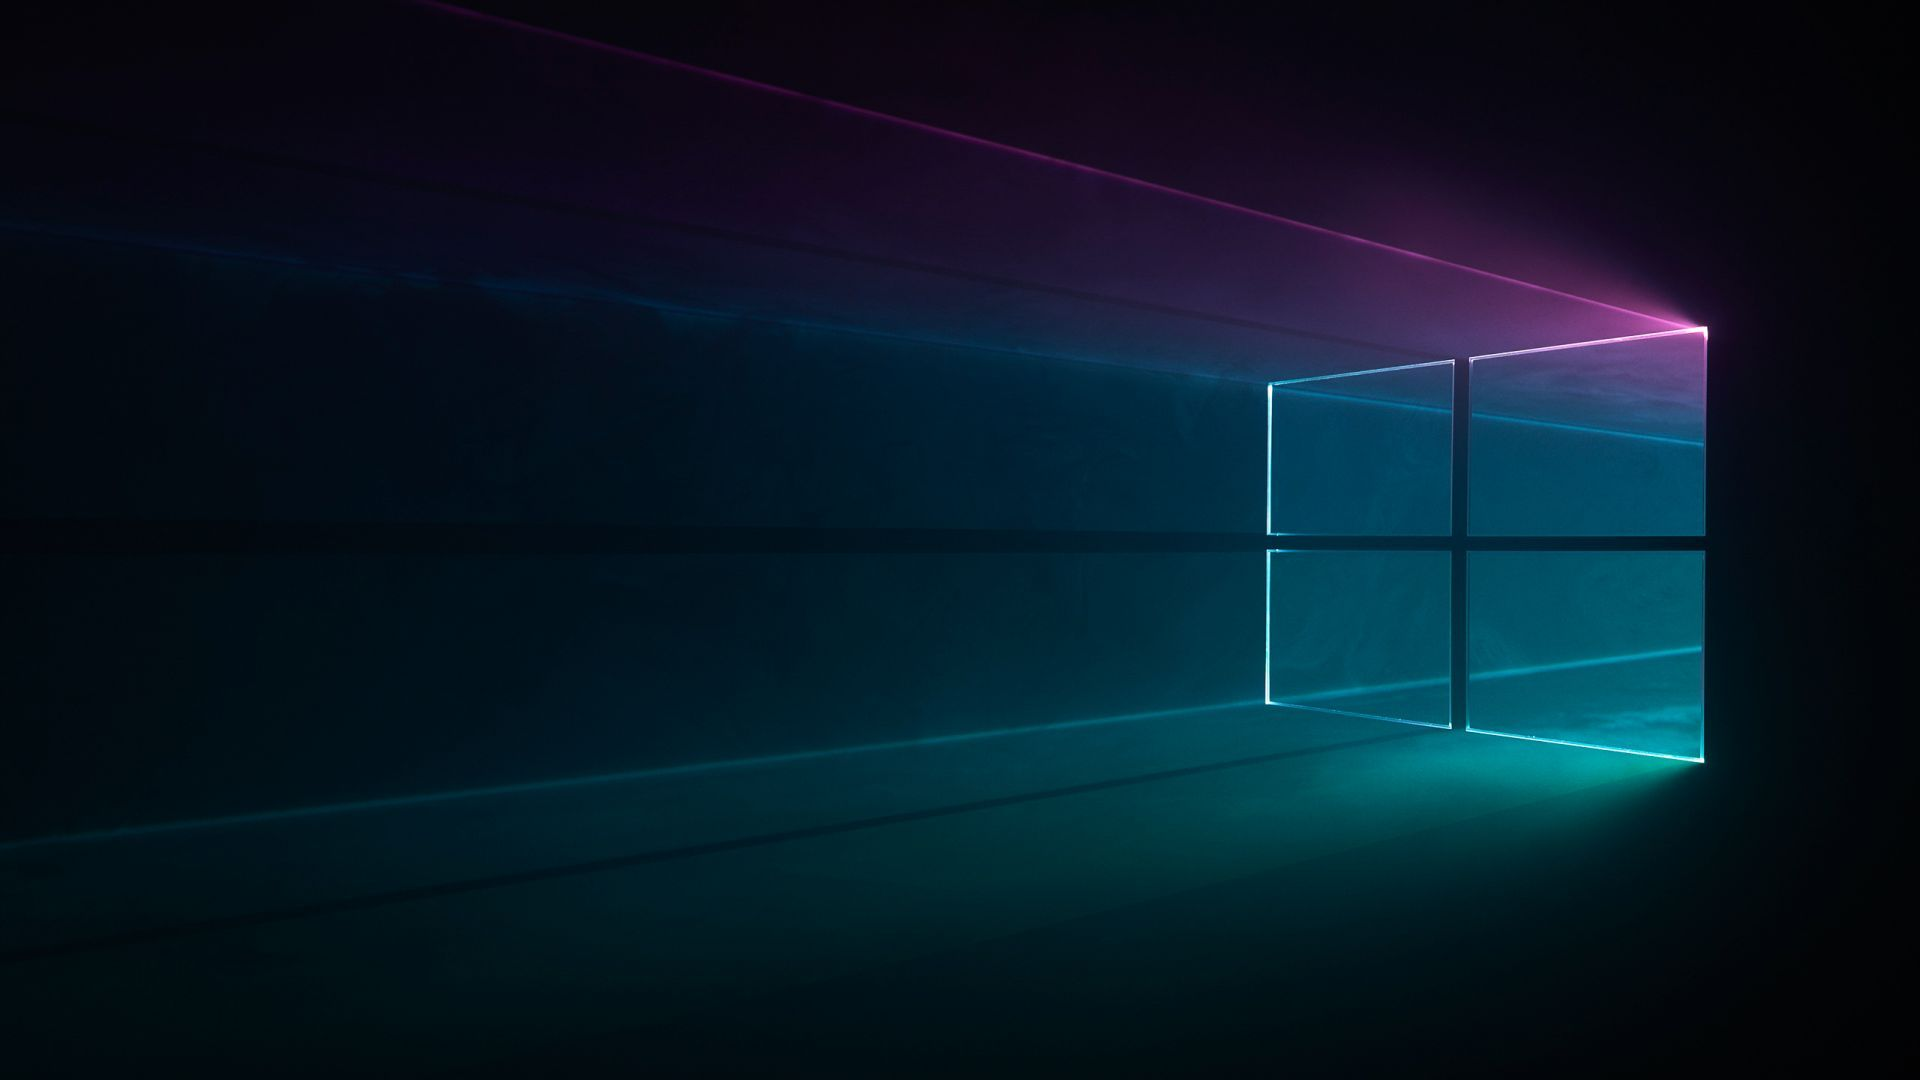 Download Wallpapers Of Windows 10 Windows Logo Multi Color Hd